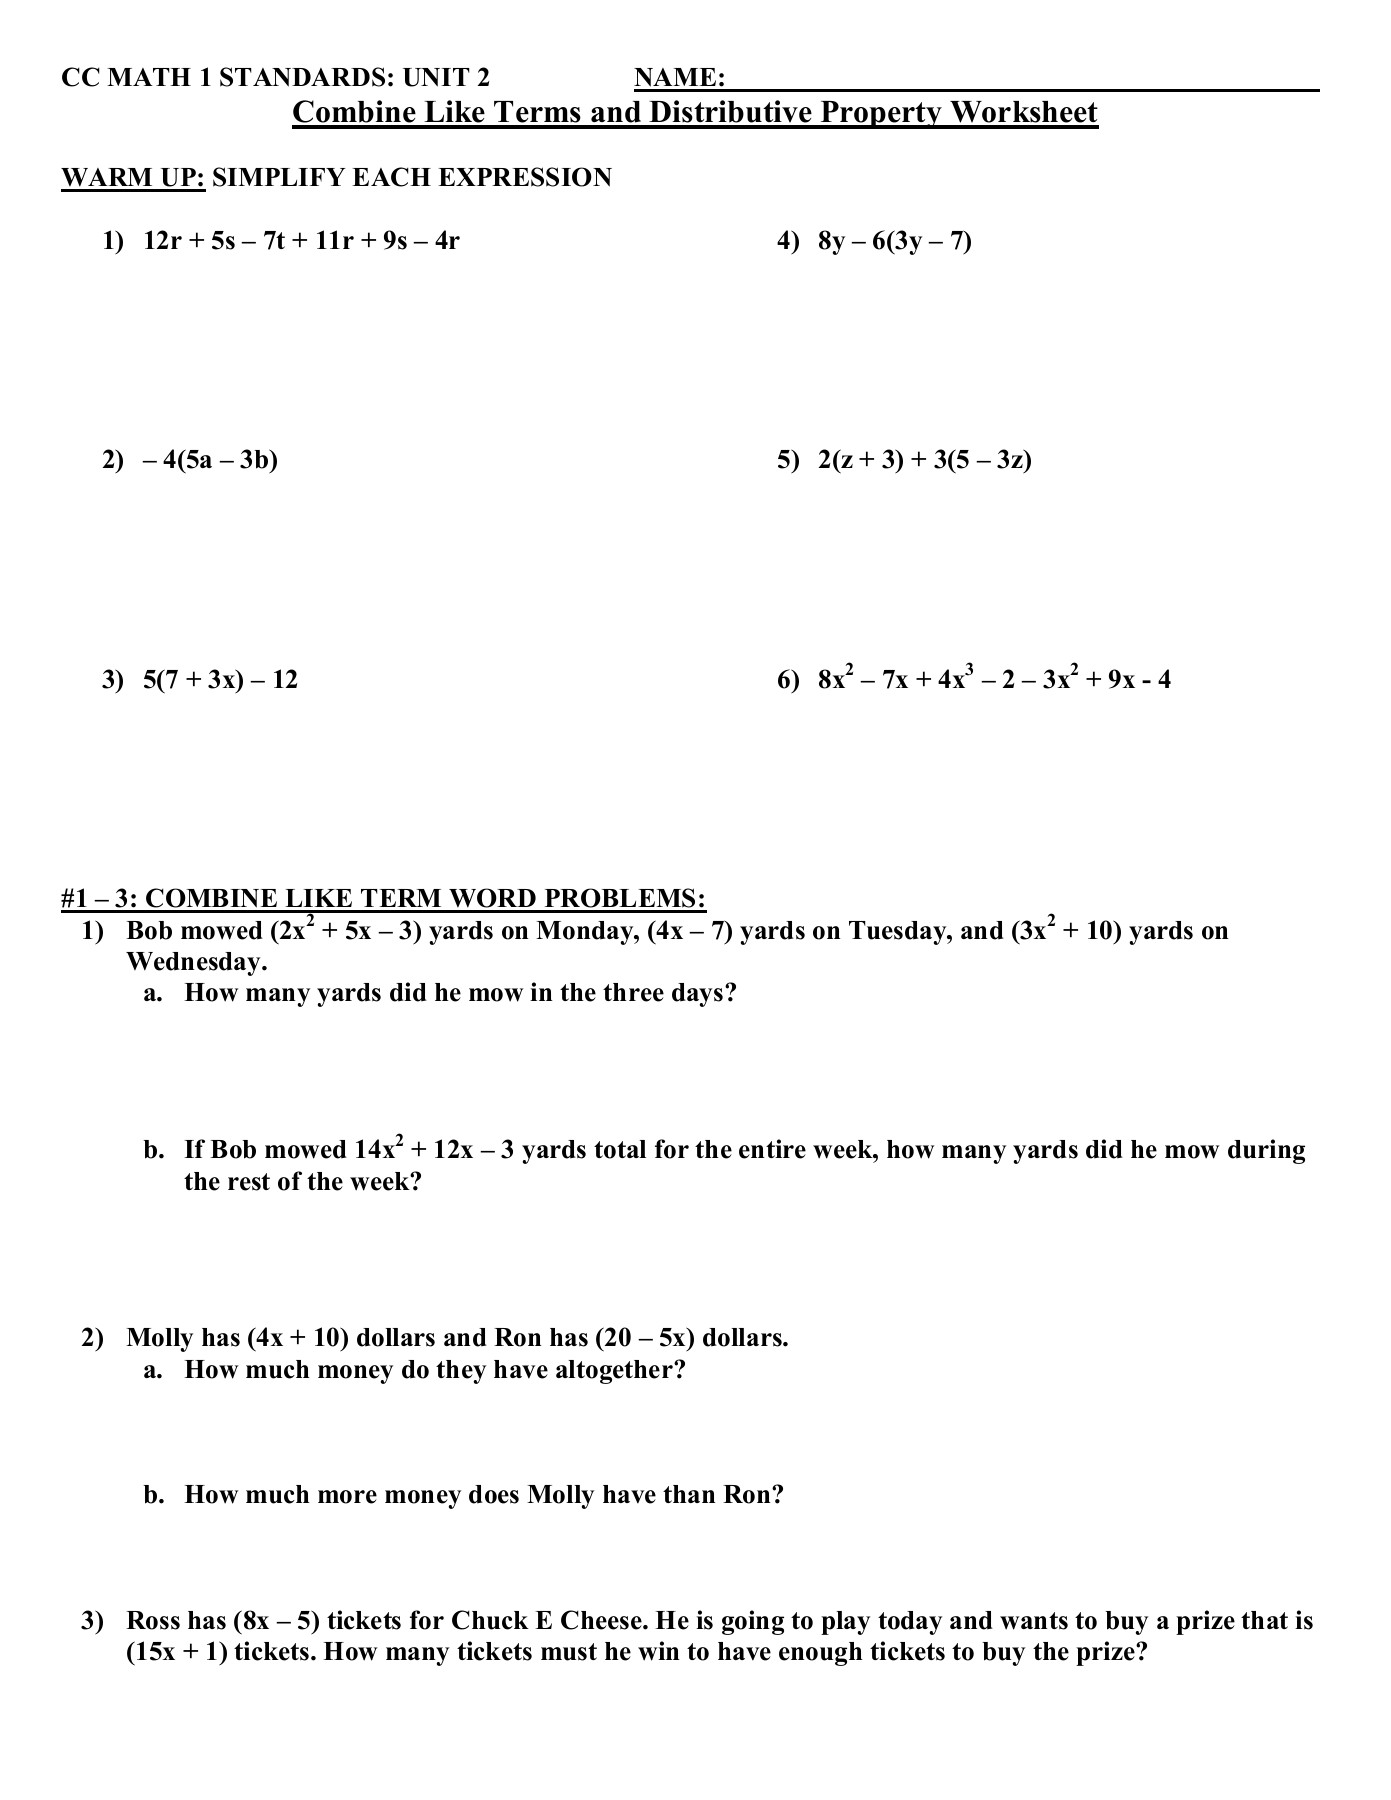 Distributive Property And  bining Like Terms Worksheet additionally bining Like Terms Equations Worksheet Solving Equations  bining further Algeic Expression Worksheet With Answers  bining Like Terms furthermore  further bining Like Terms Worksheet Pre Alge Like Terms Worksheet furthermore Distributive Property Worksheets 7th Grade Related Post Pdf also bining Like Terms Worksheet Grade Activities Distributive further CC MATH 1 STANDARDS  UNIT 2 NAME   bine Like Terms and     Pages likewise bine Like Terms Worksheet Version 1 Answer Key   Pegitboard further worksheets  bining like terms   blahblah   Pegitboard besides bining Like Terms Worksheet Pre Alge Free Alge Worksheets further bining like terms quiz – healthyregardshayley together with Distributive Property And  bining Like Terms Worksheets also bining Like Terms Quiz Picture Algeic Expressions  bining in addition Contemporary Equations Distributive Property Worksheet Illustration also bine Like Terms  bining Like Terms School Yourself Alge. on combining like terms worksheet answers